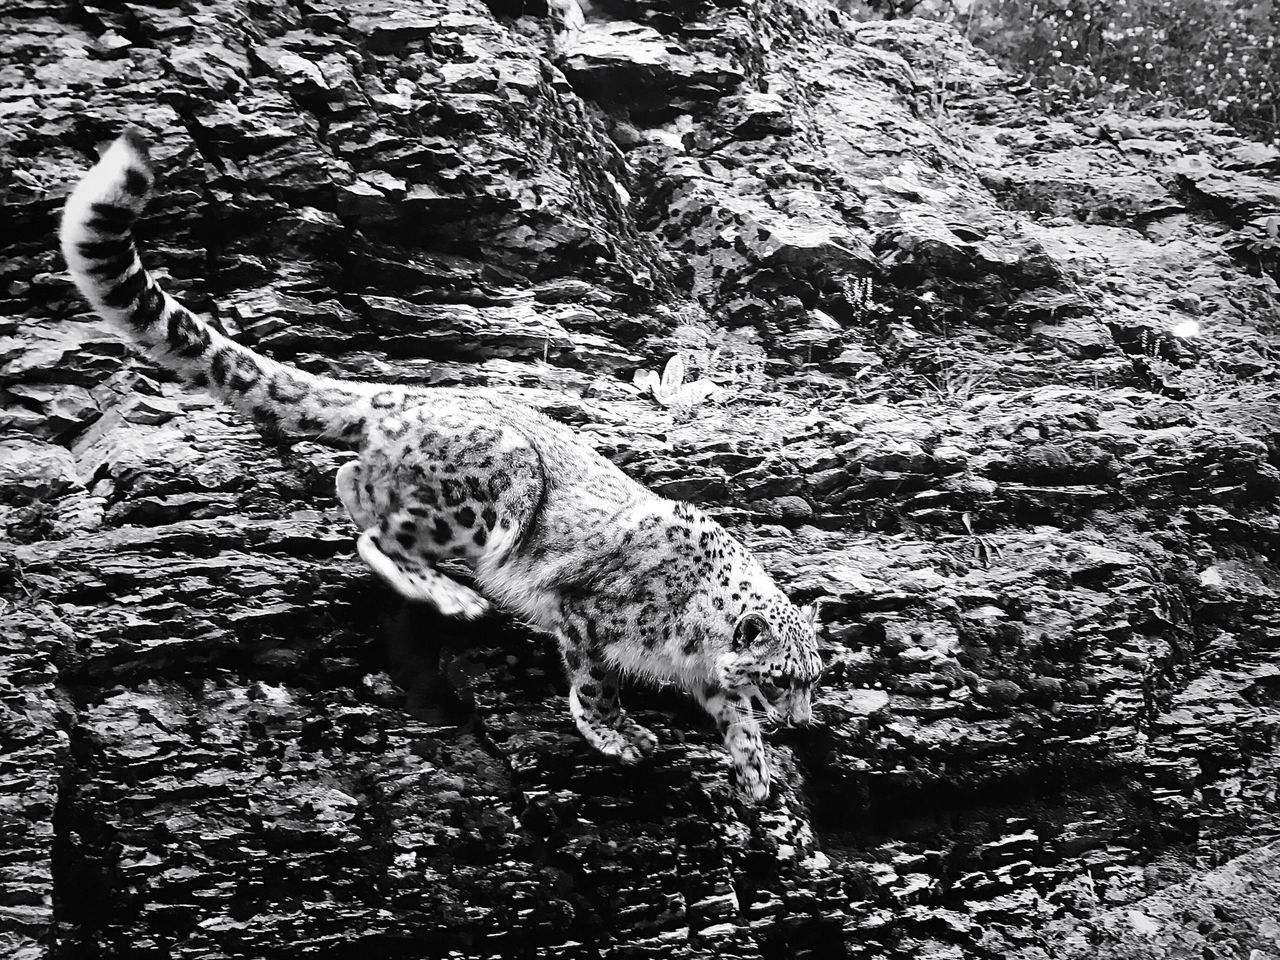 """Going down"" snow leopard heading down rock face Panther Bw Photography Bw Endangered Animals Snow Leopard Animal Wildlife Wildlife & Nature Cat Feline Big Cats Beauty In Nature Outdoor Photography Day Leopard No People Outdoors Nature Mammal Animal Themes One Animal Mammals Animal Photography Wildlife Photography Bw Photo Rock"